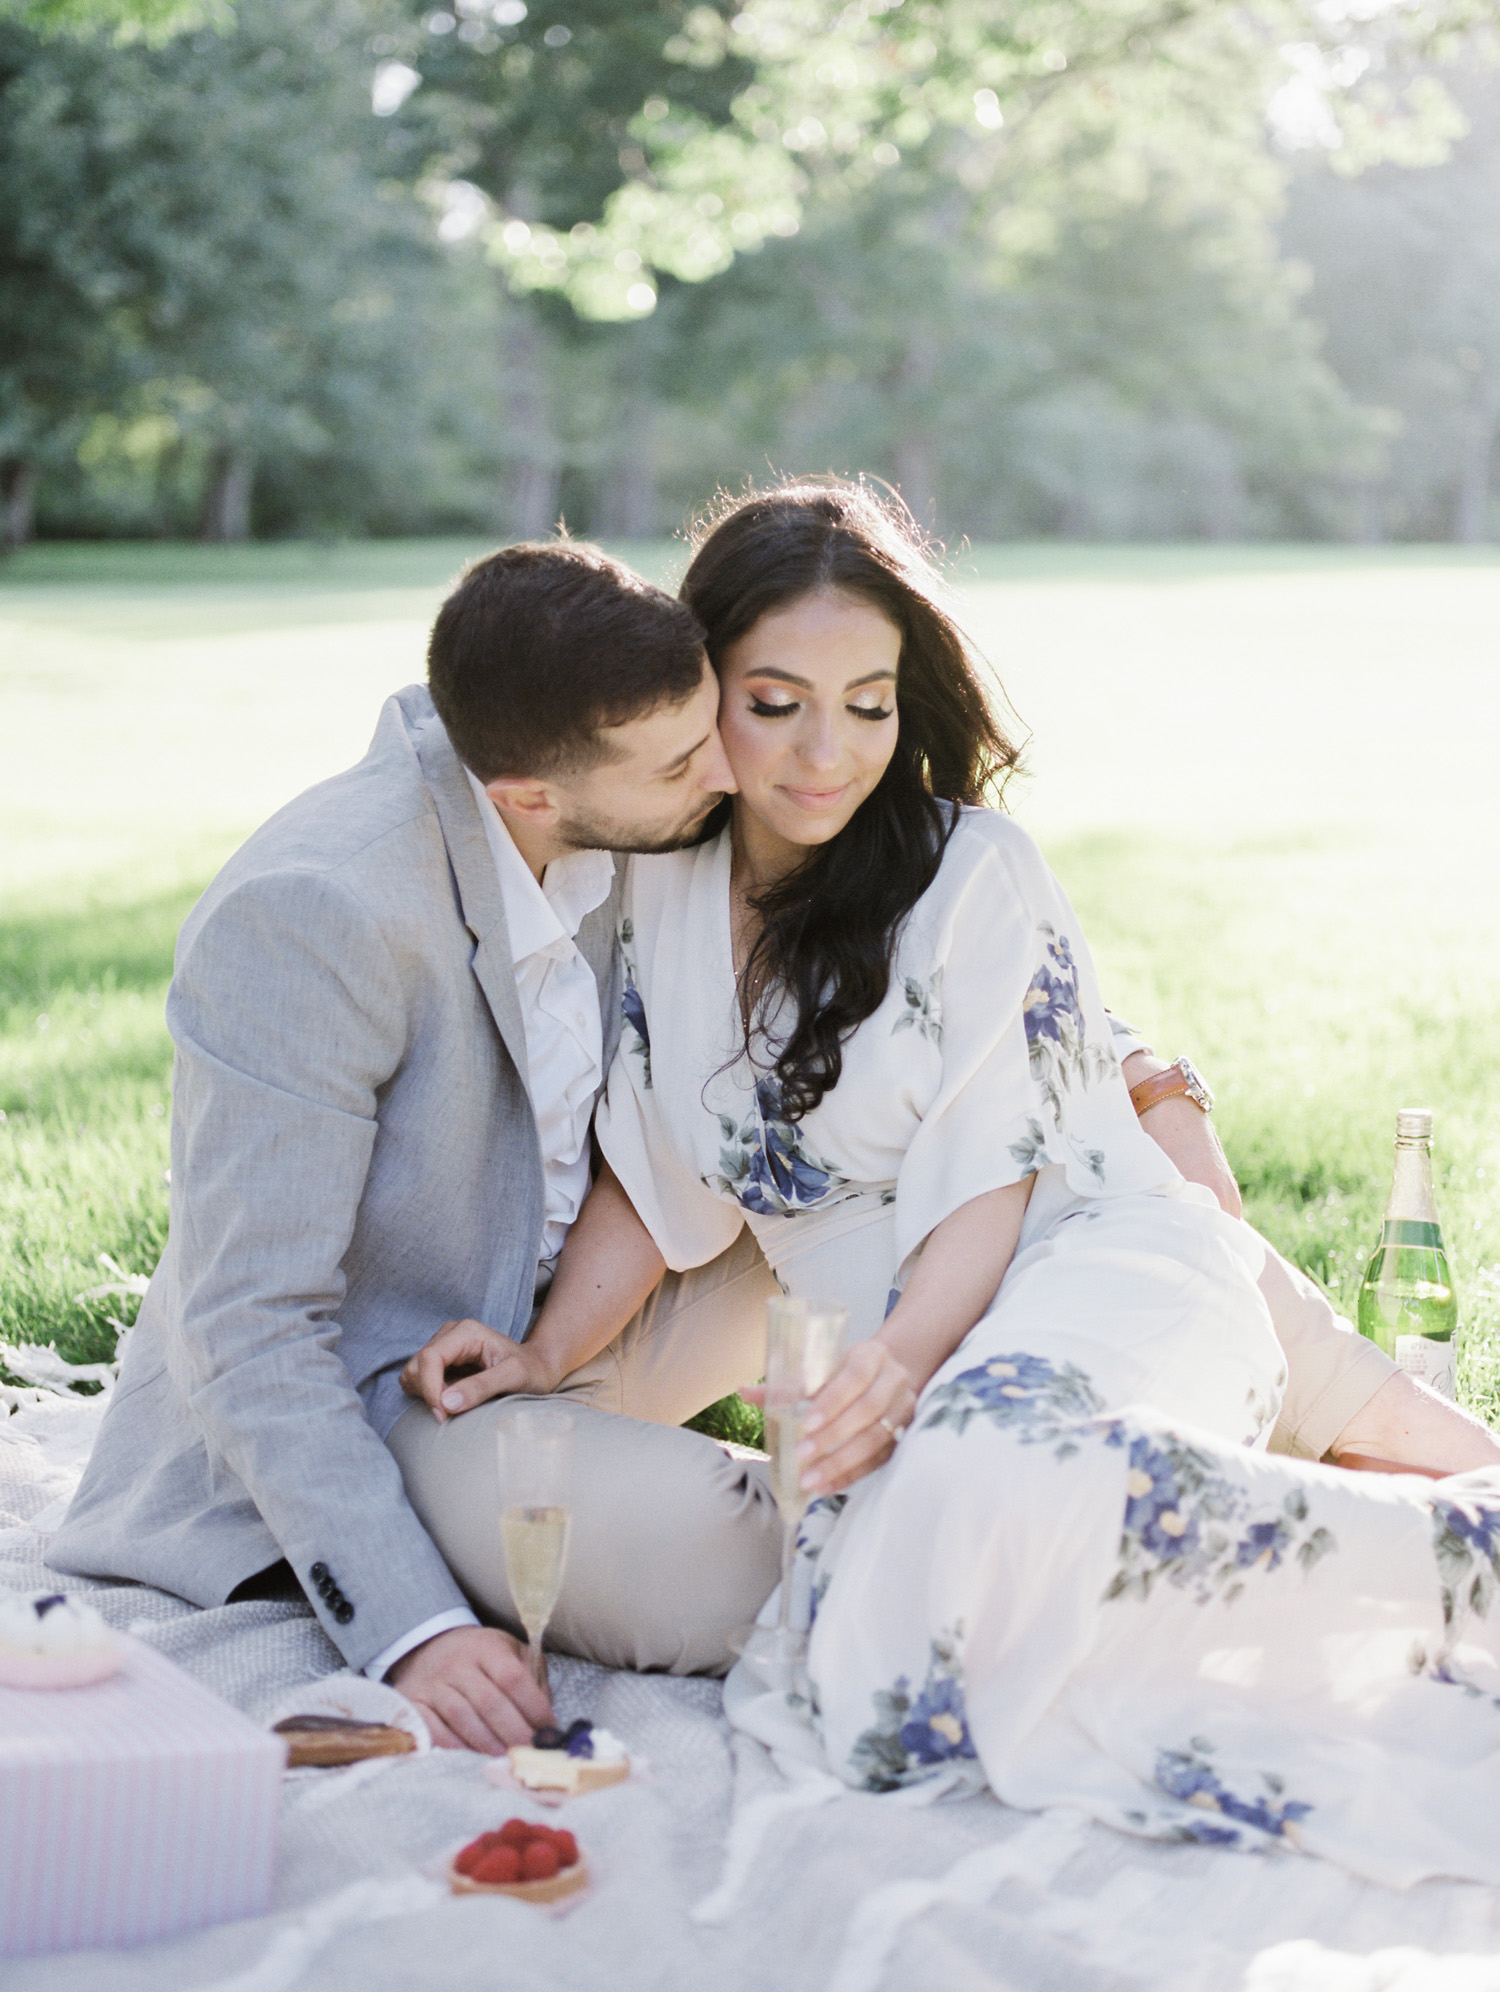 An Arab couple cuddles on a blanket during their picnic engagement photos at the Ford House